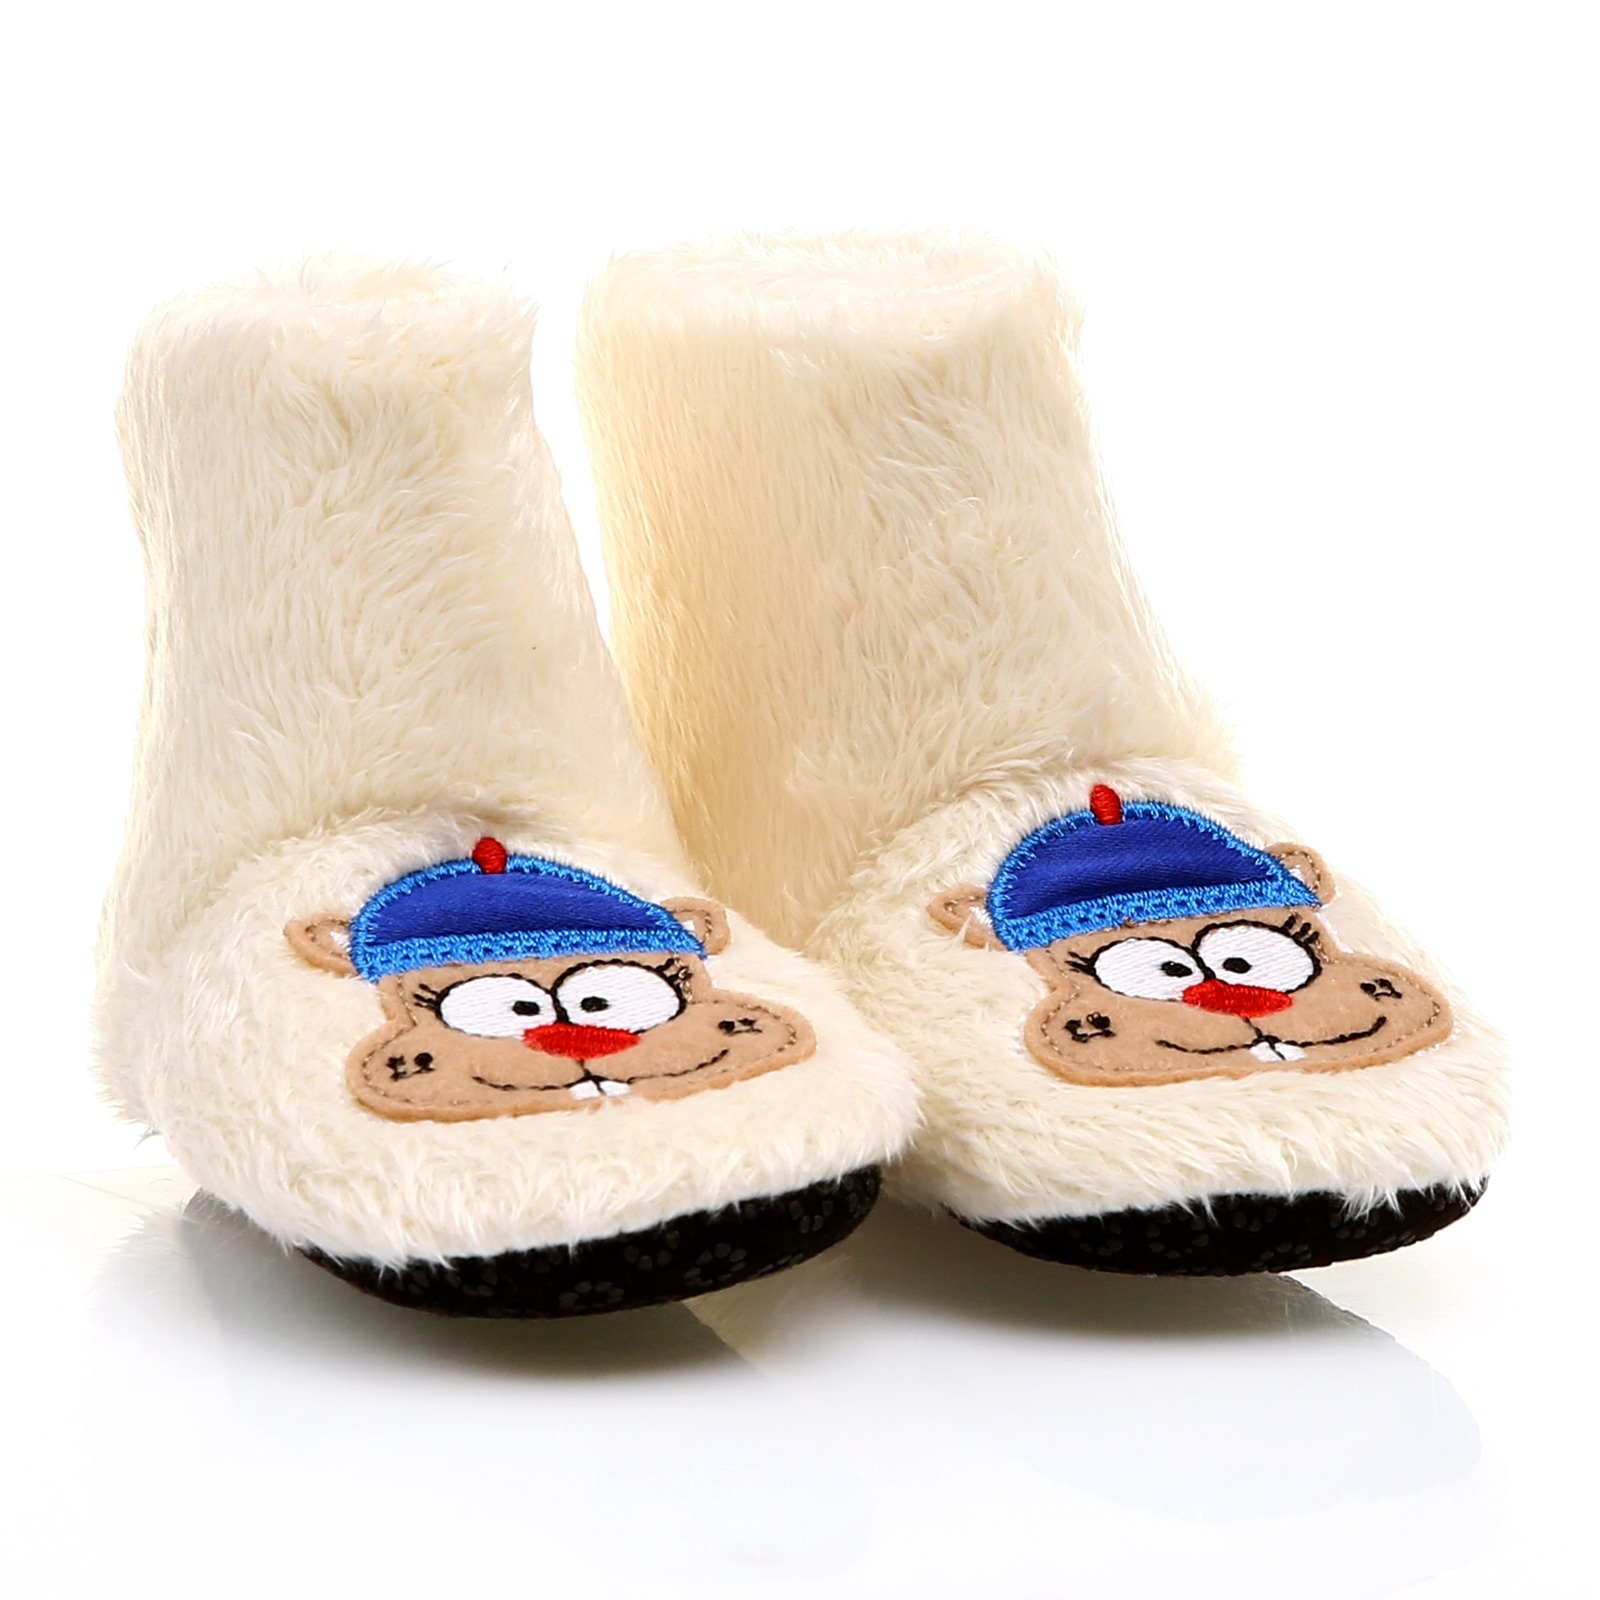 Ebebek HelloBaby Embroidered Baby Comfortable Home Bootie Shoes